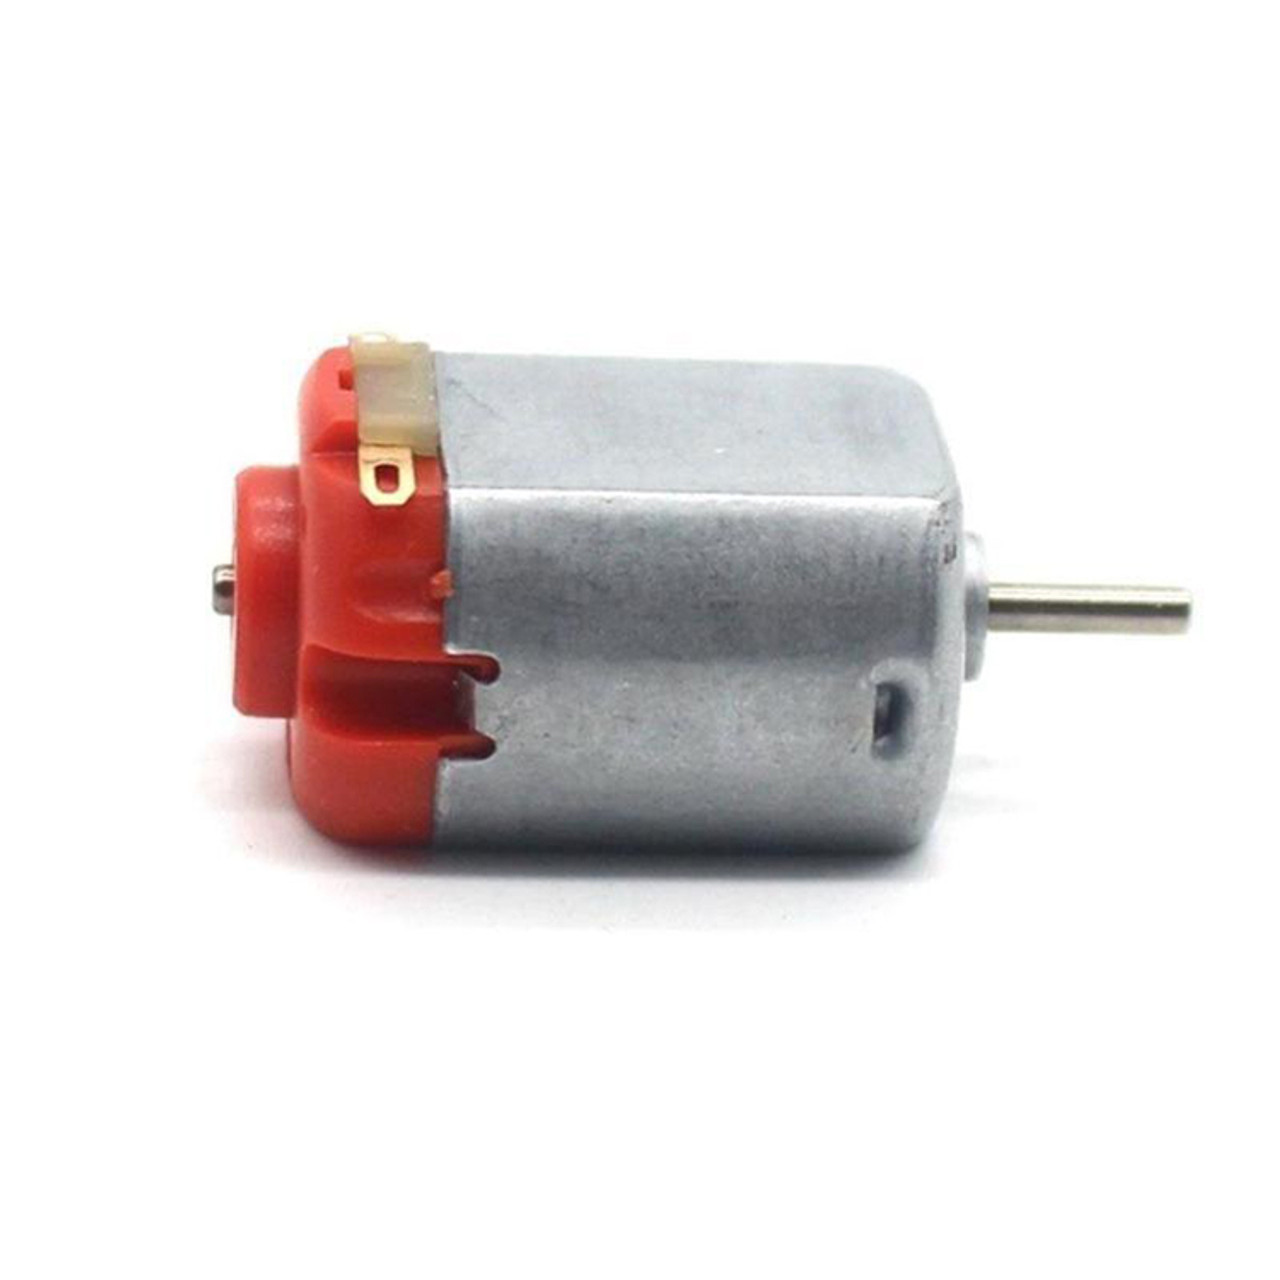 Mini DC Motors 3V 6V low torque 16500 rpm max